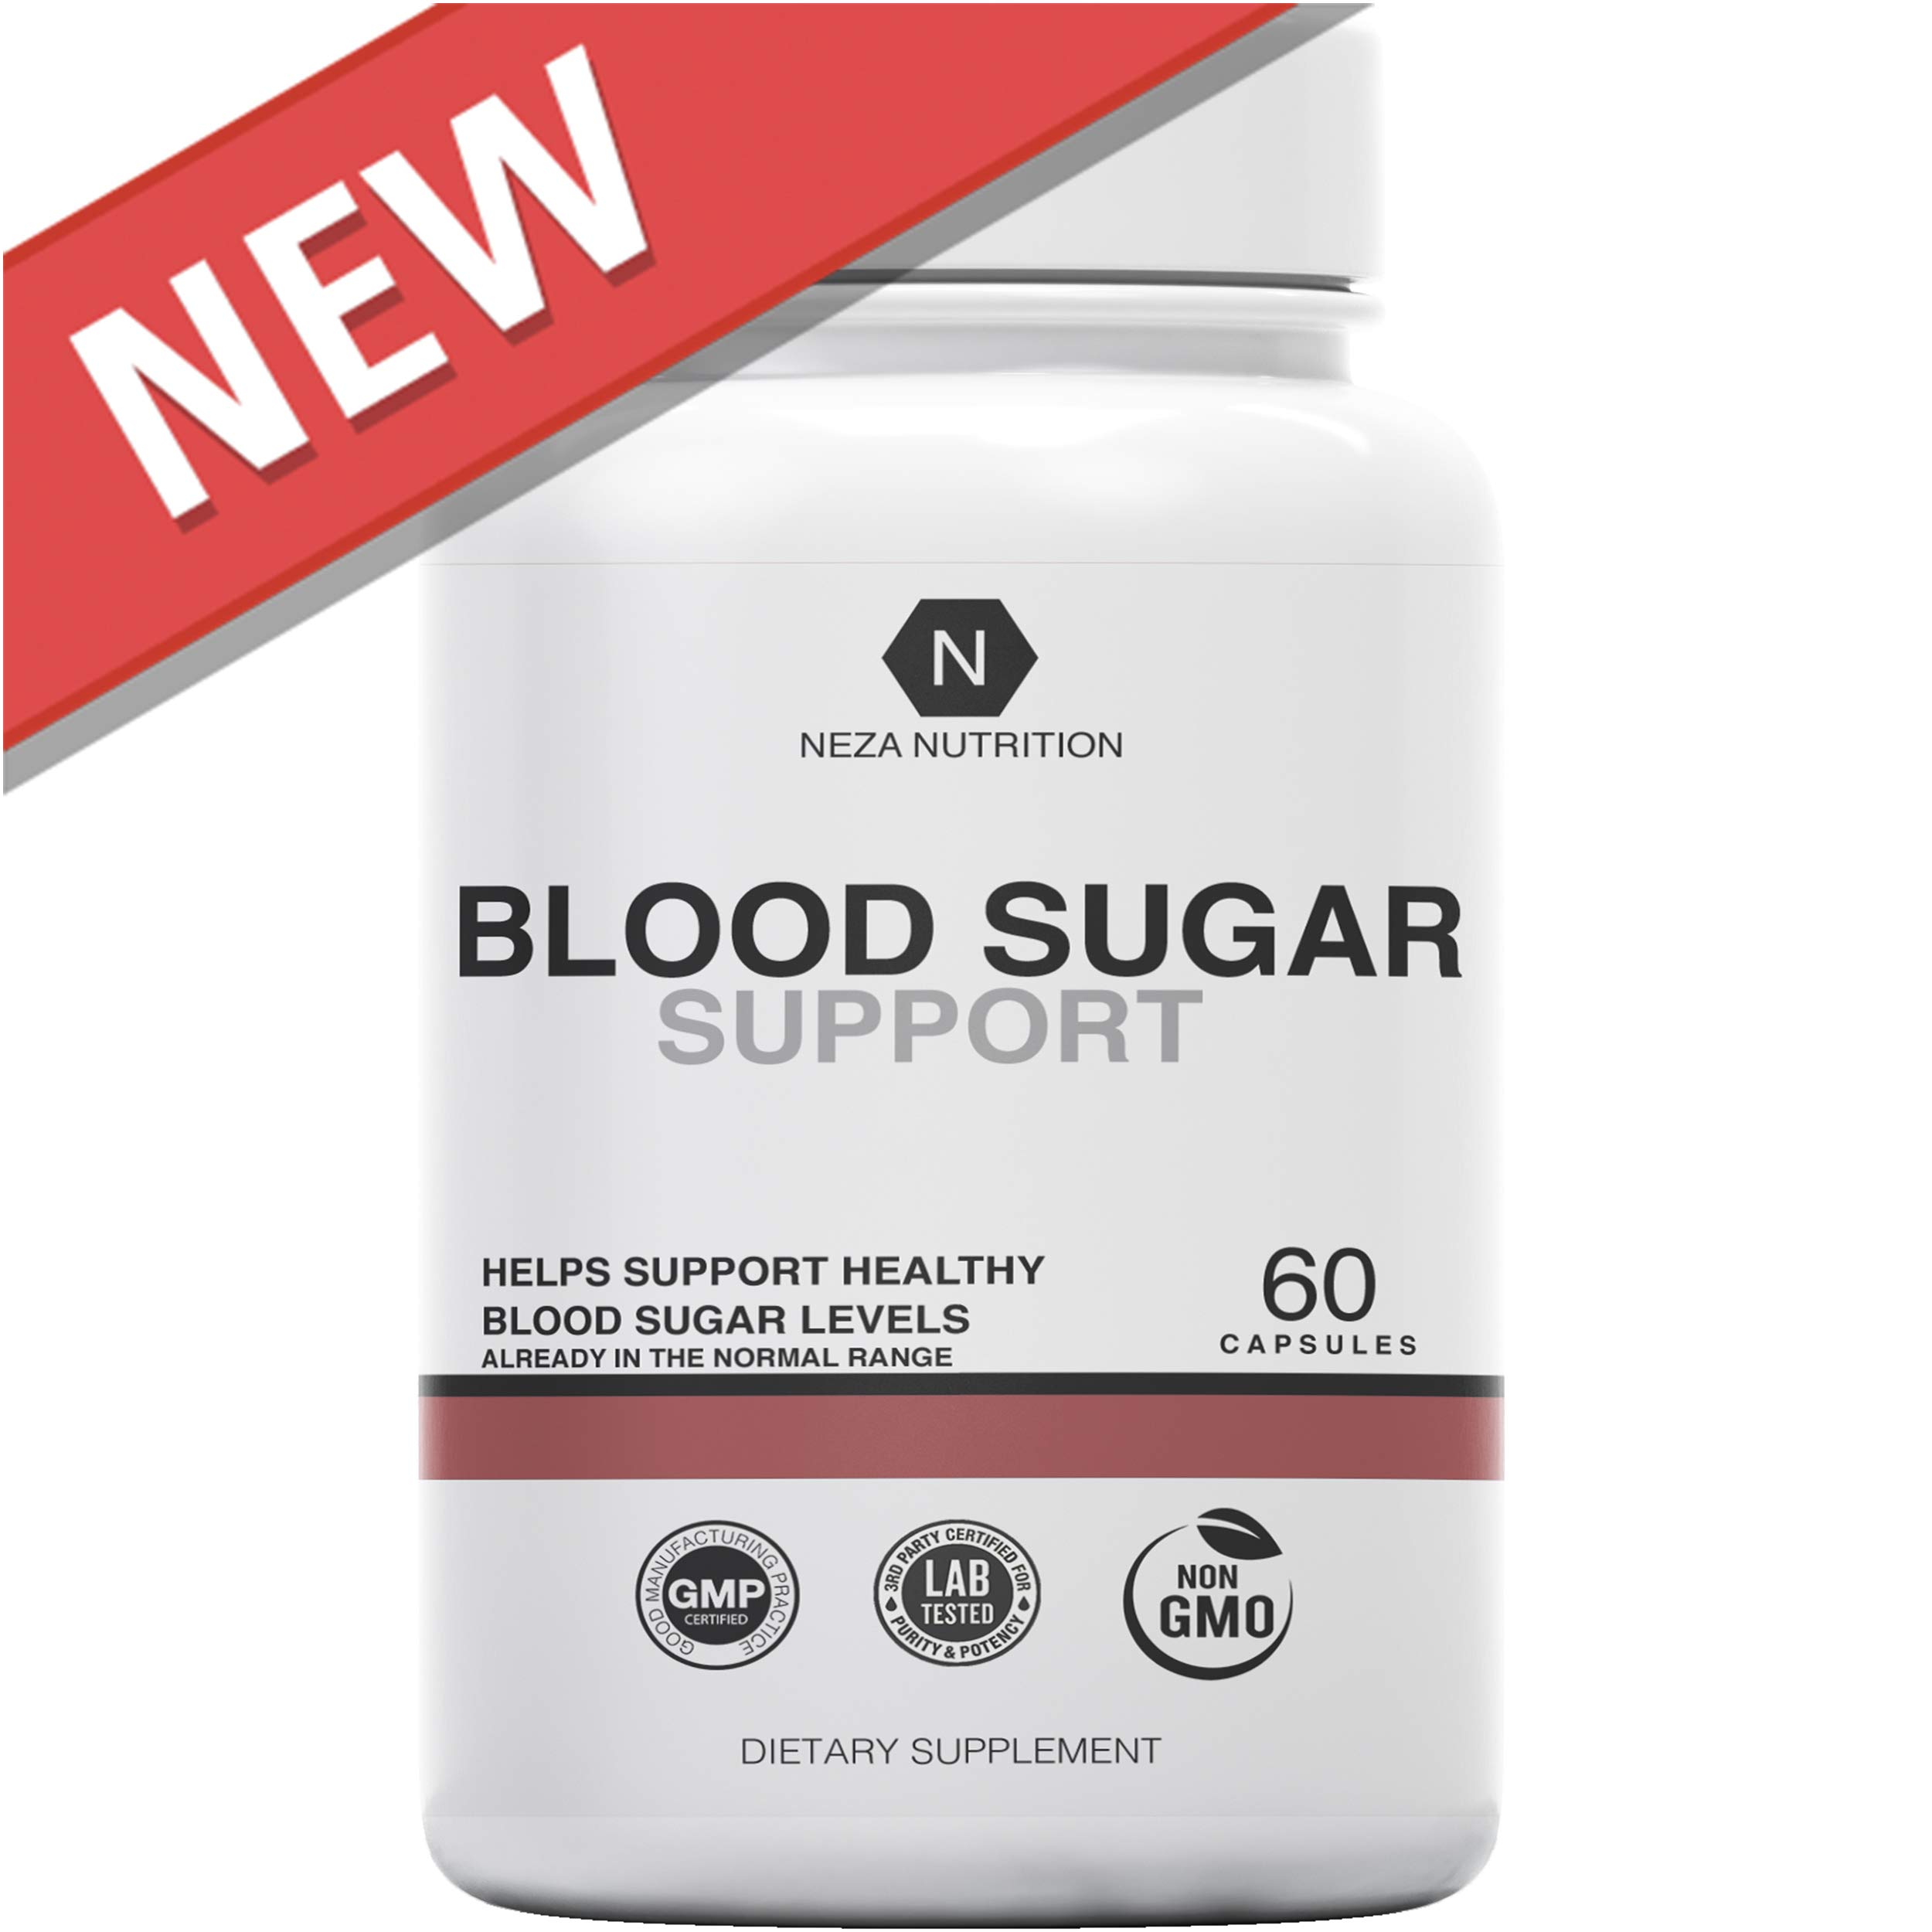 Blood Sugar Support Supplements: Natural Supplement Formula - Glucose Stabilizer with Cinnamon Cassia and Gymnema Sylvestre to Balance, Control, Support Levels by Neza Nutrition - 60 Capsules by Neza Nutrition